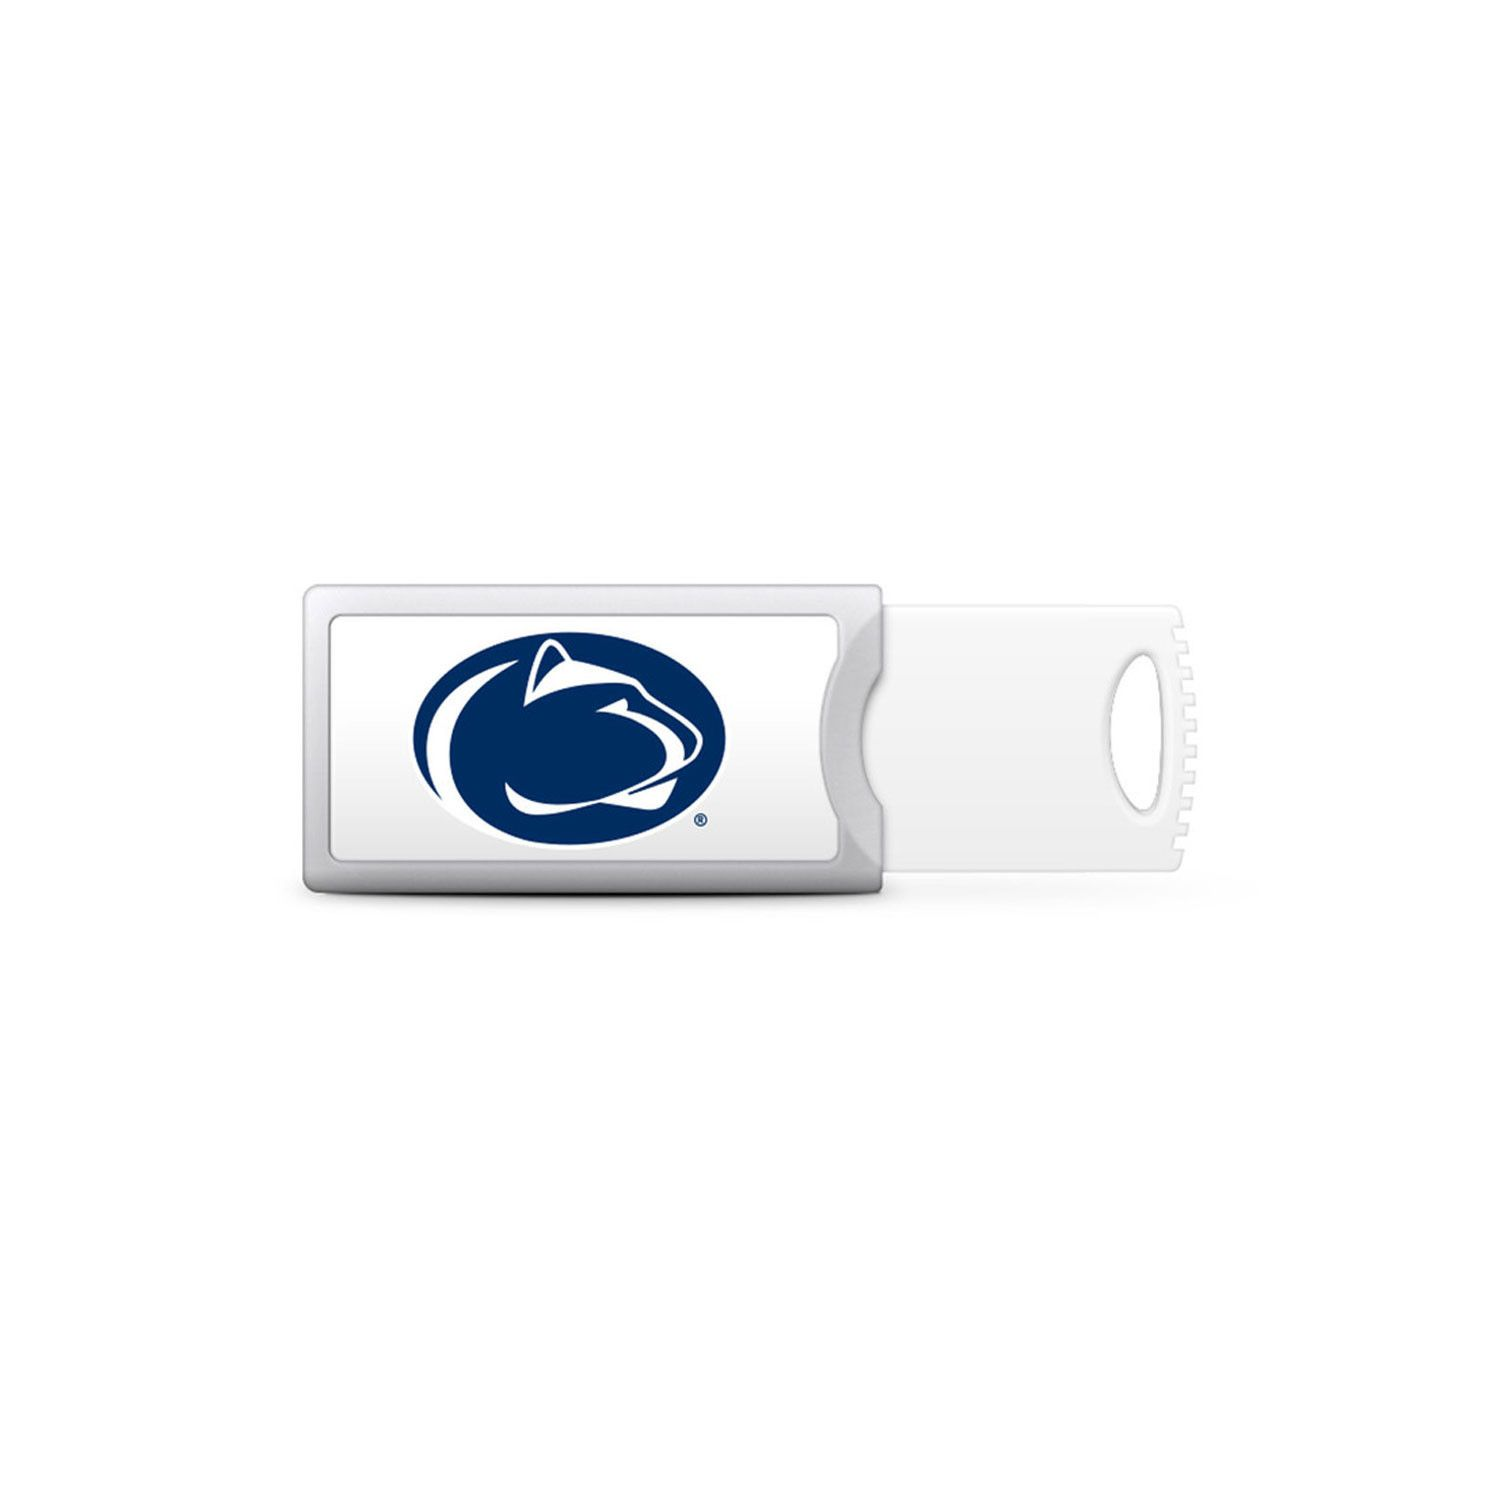 Push USB 2.0 Penn State University